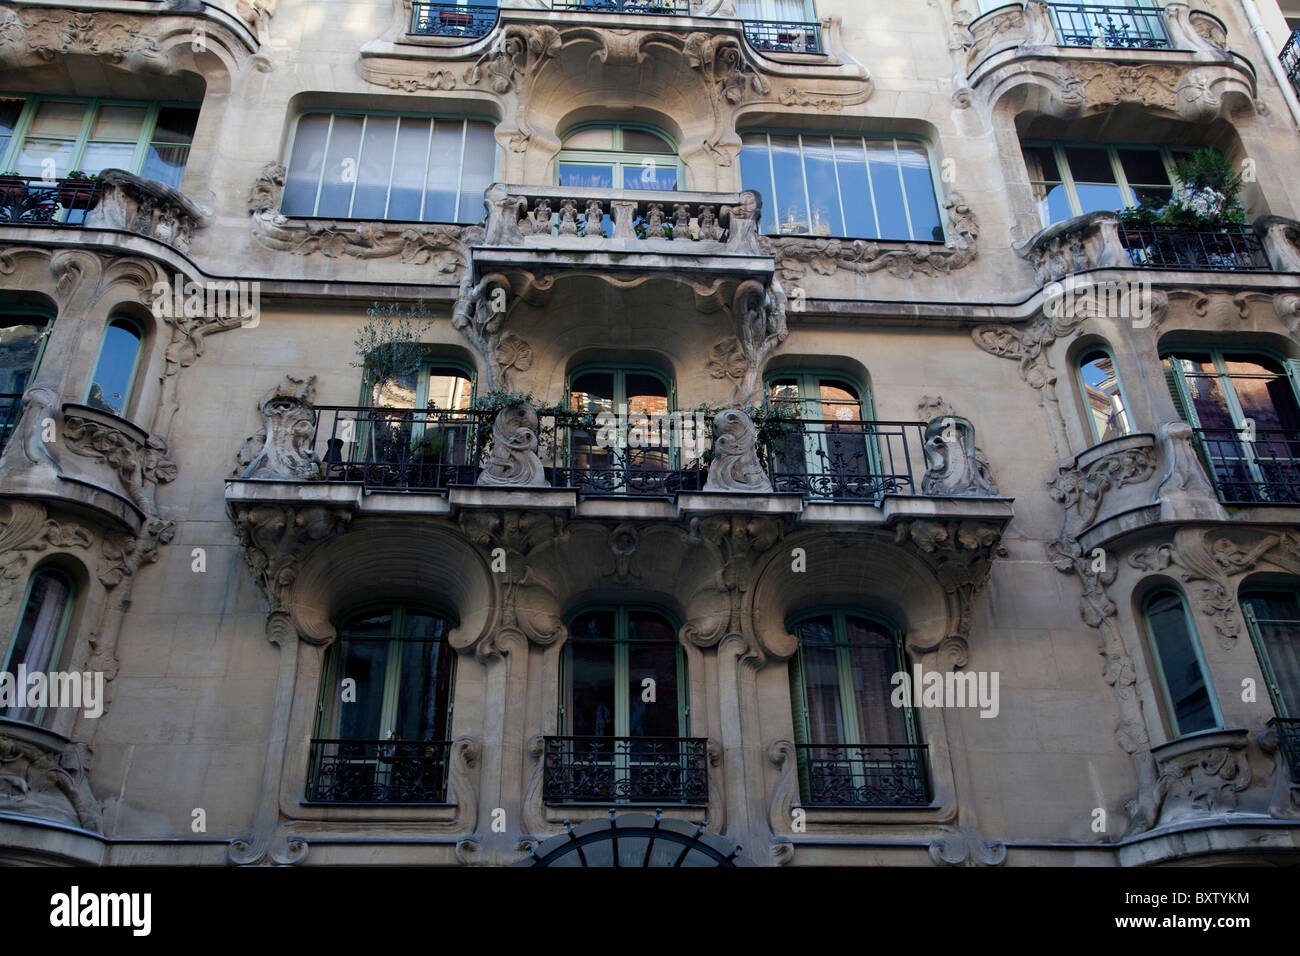 art nouveau architecture paris france stock photo 33739992 alamy